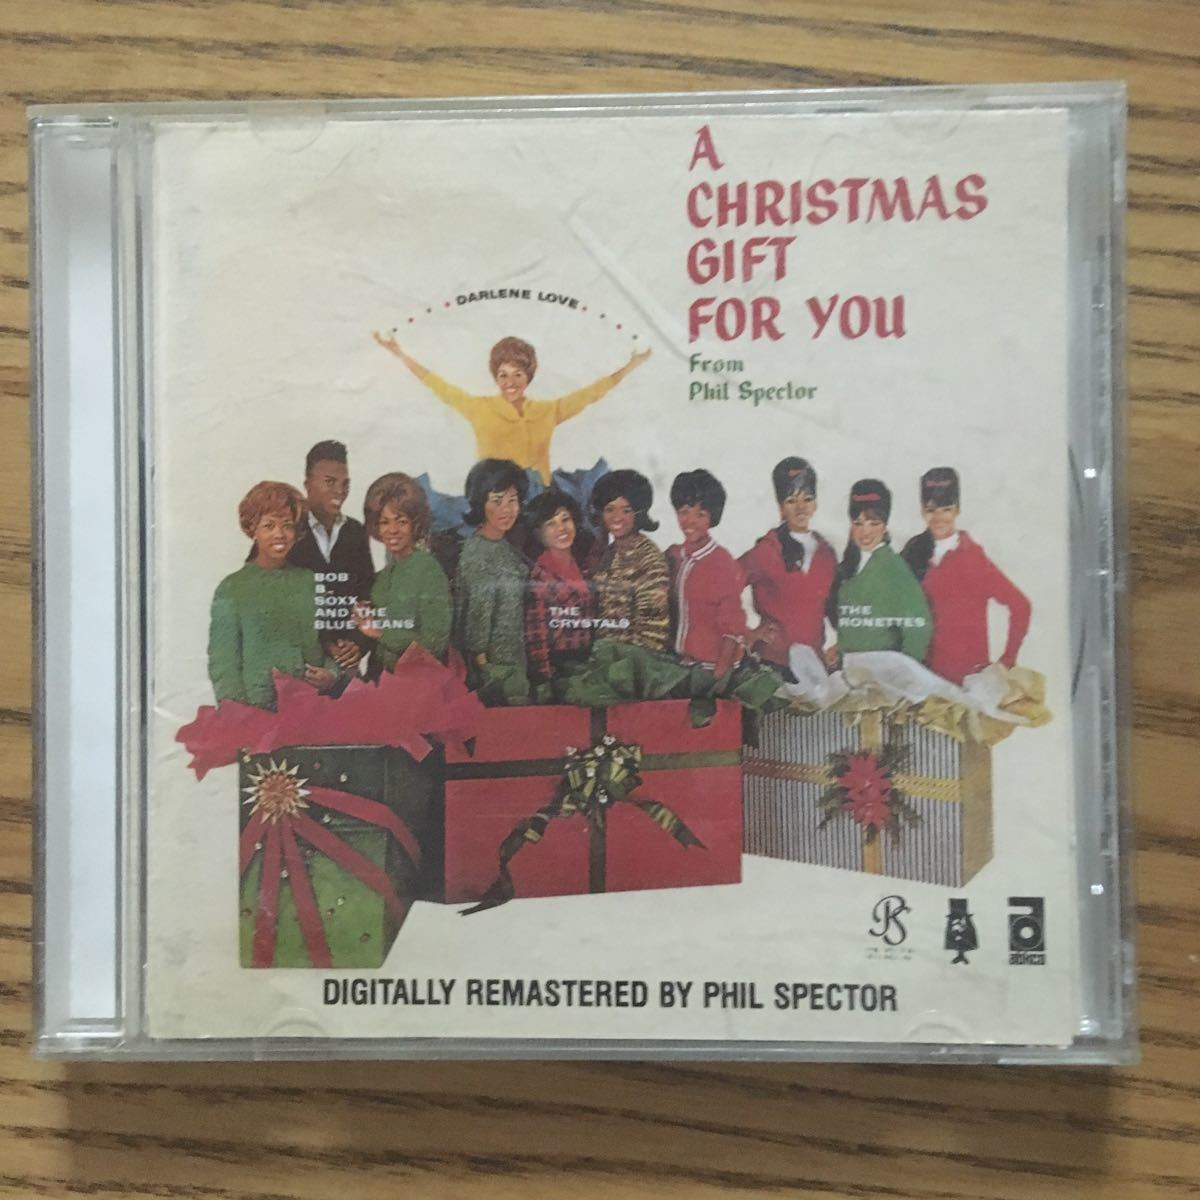 【499スタ売り切り!ノークレ厳守】A CHRISTMAS GIFT FOR YOU FROM PHIL SPECTOR[RONETTES,DARLENE LOVE,CRYSTALS]★シリアポール 大瀧詠一